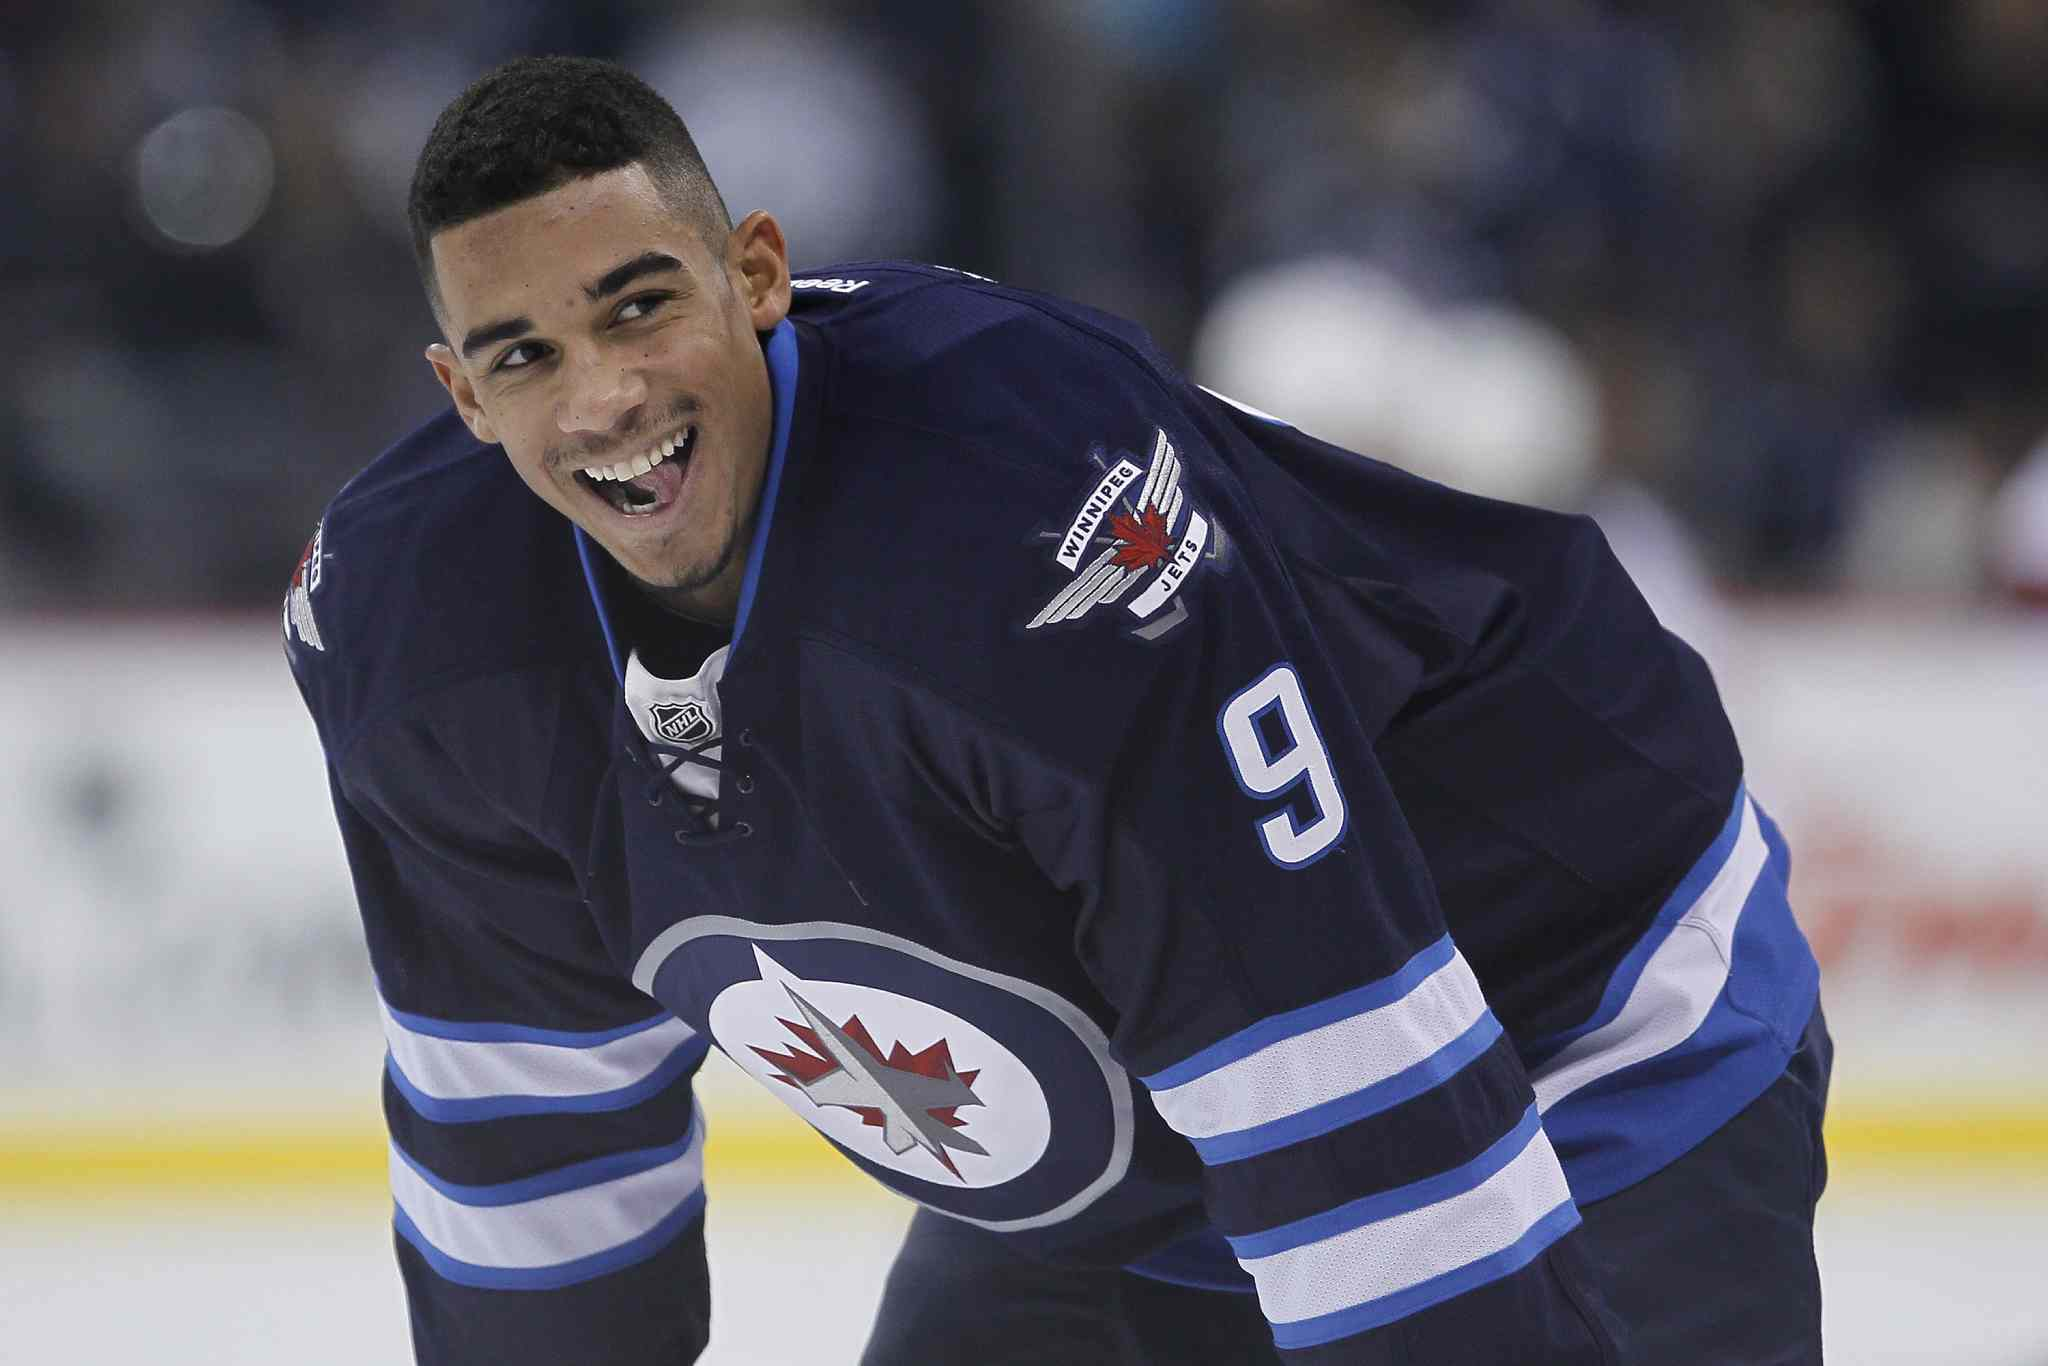 Winnipeg Jets' Evander Kane smiles at the crowd during the pre-game.